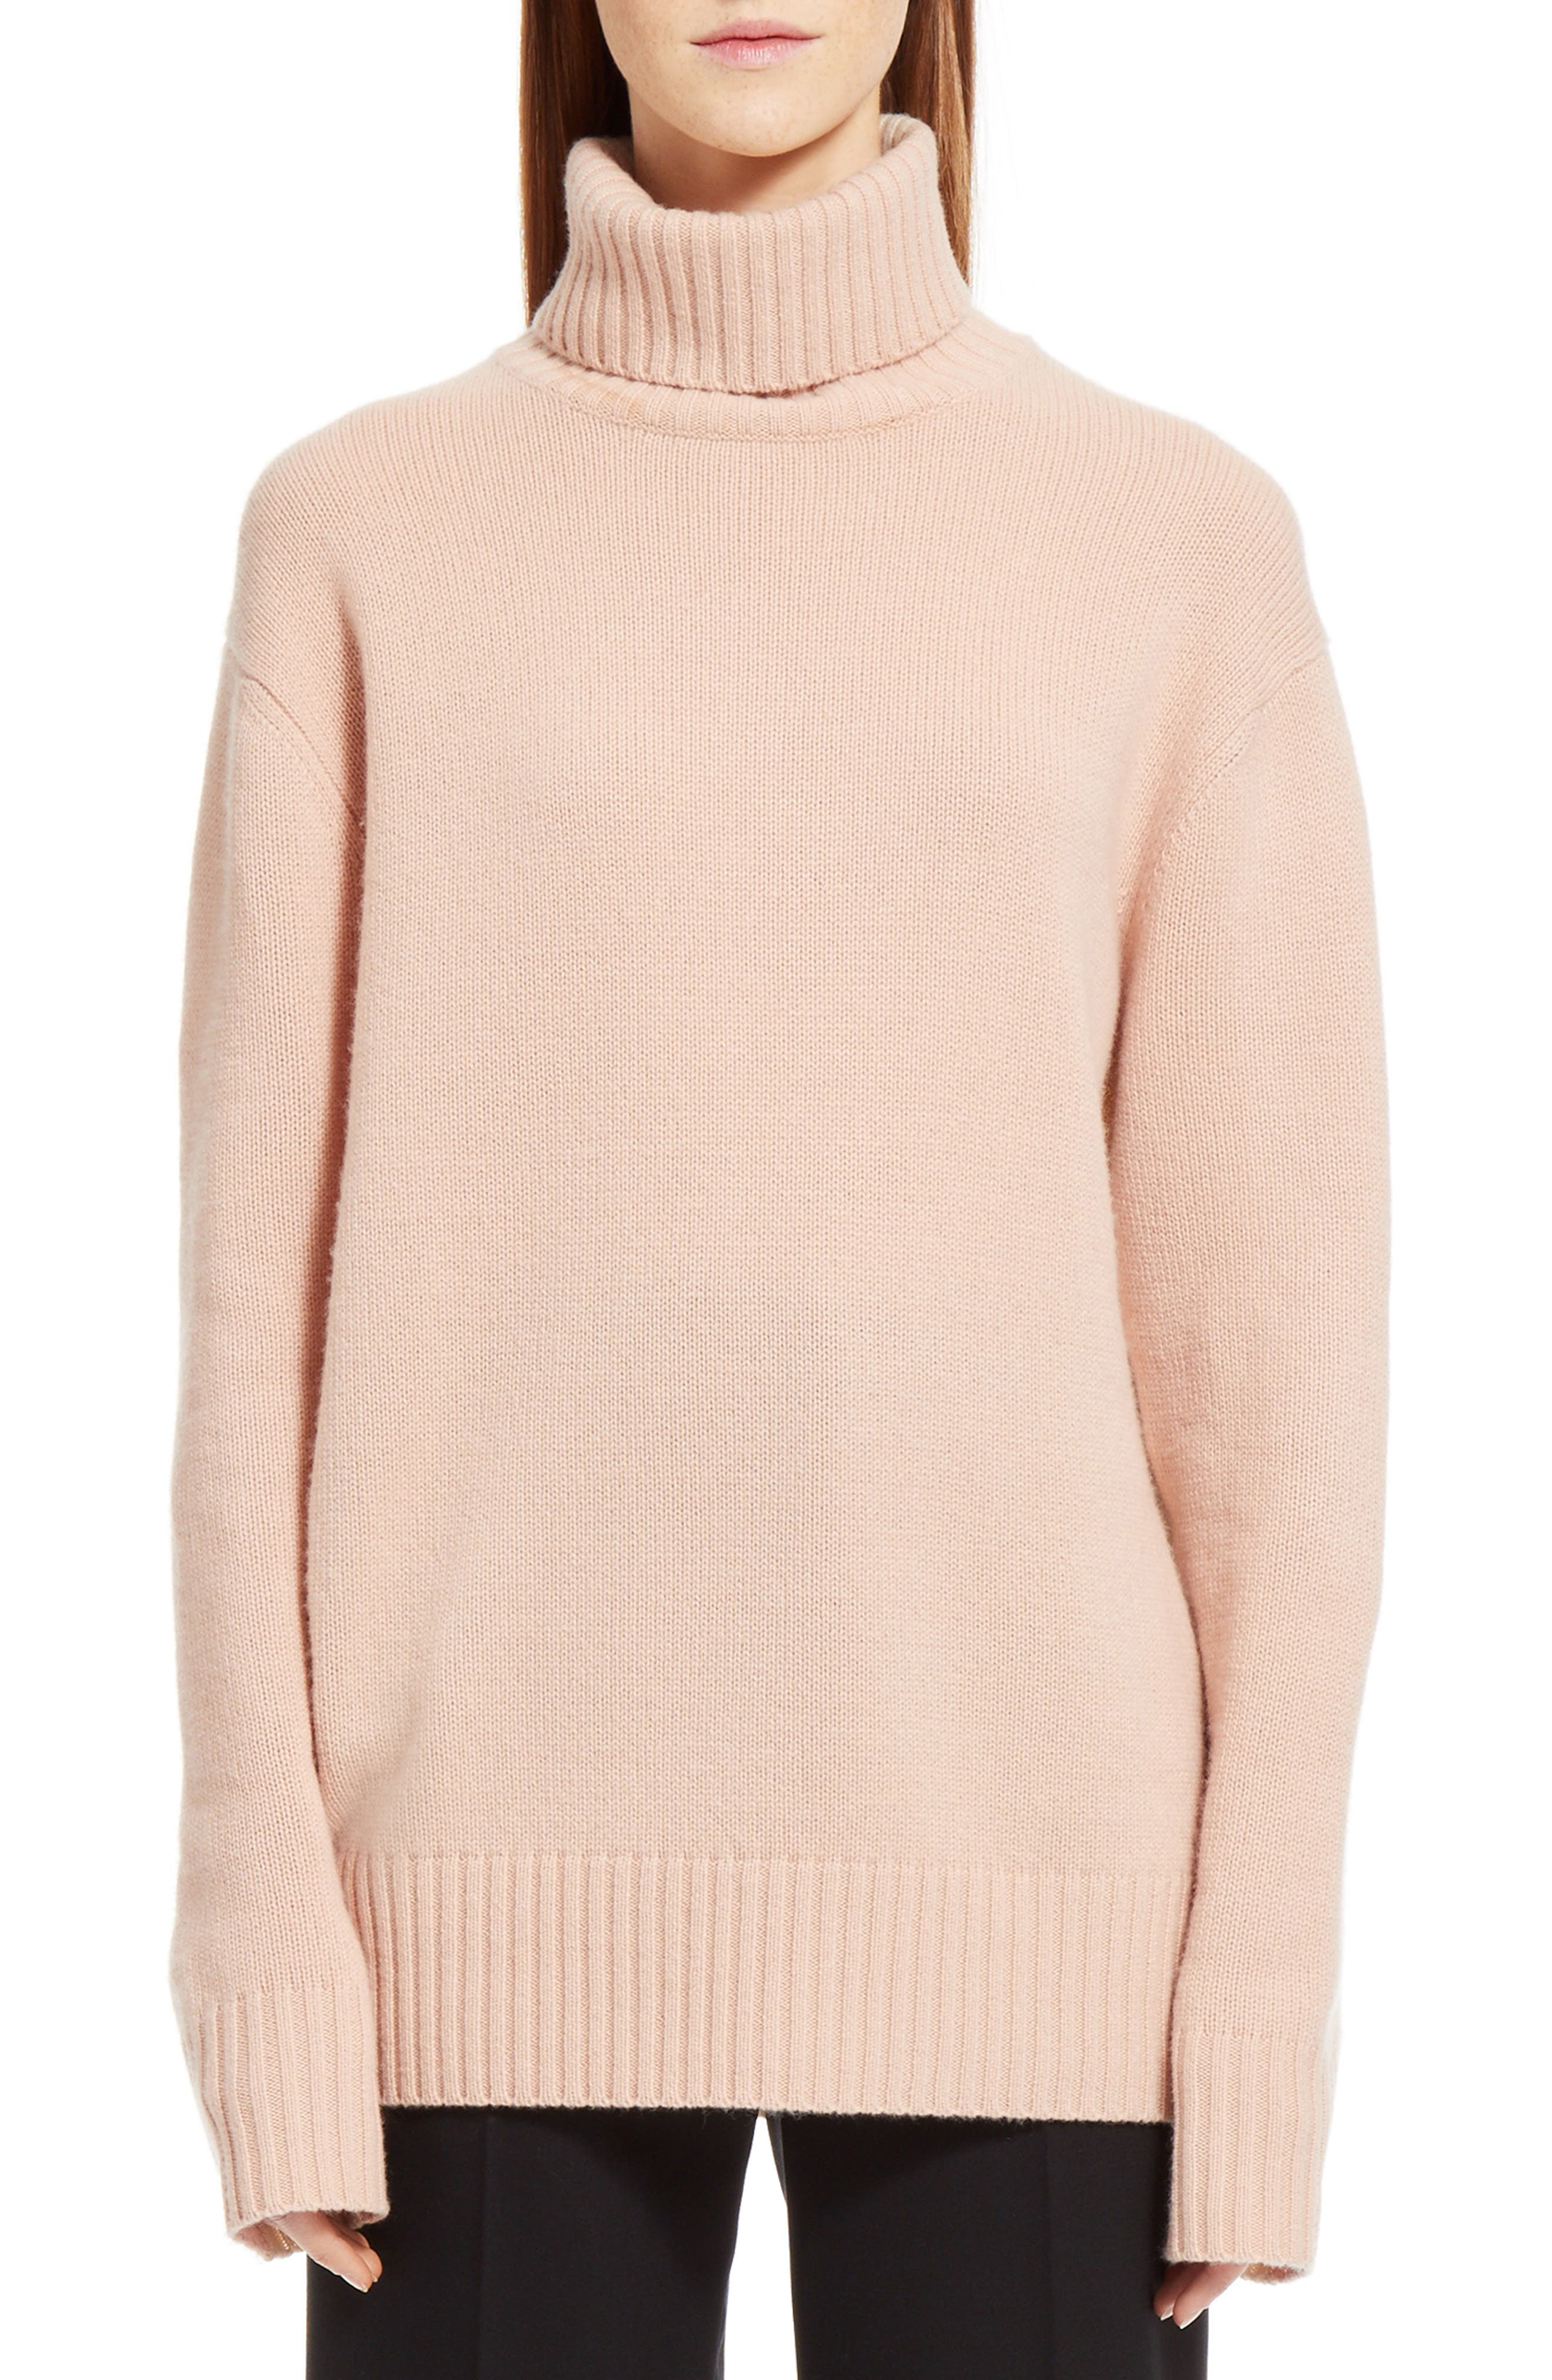 Colorblock Cashmere Turtleneck Sweater,                             Main thumbnail 1, color,                             Pink/ Beige